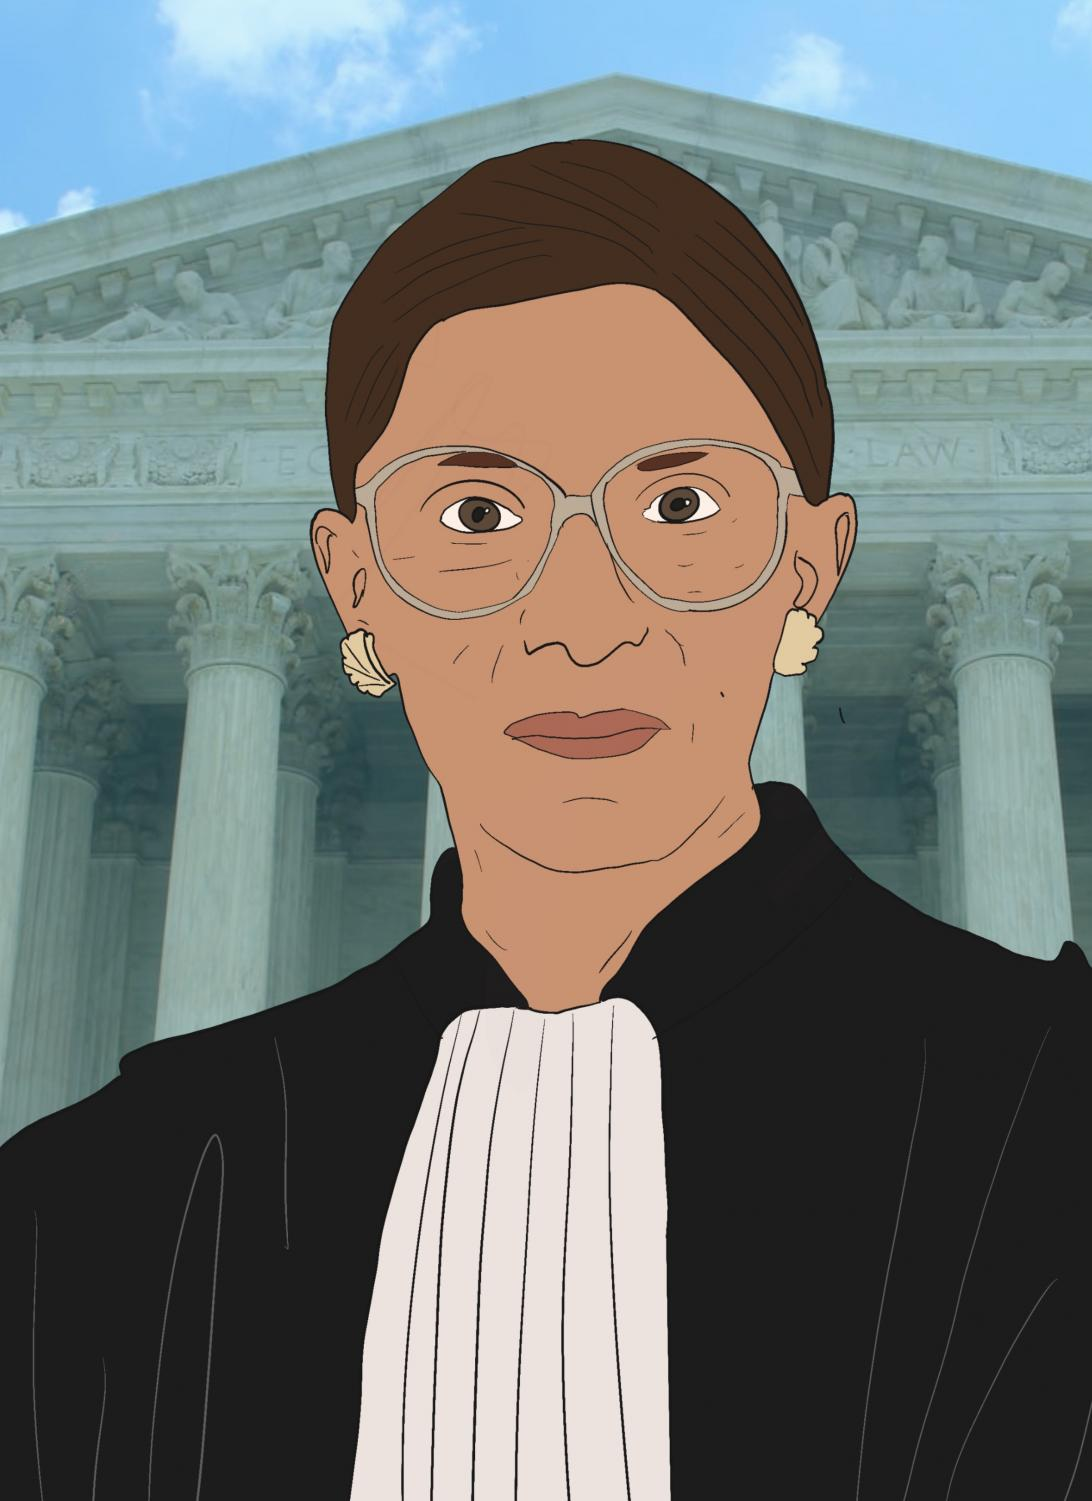 Justice Ginsburg was known most notably for her work towards gender equality